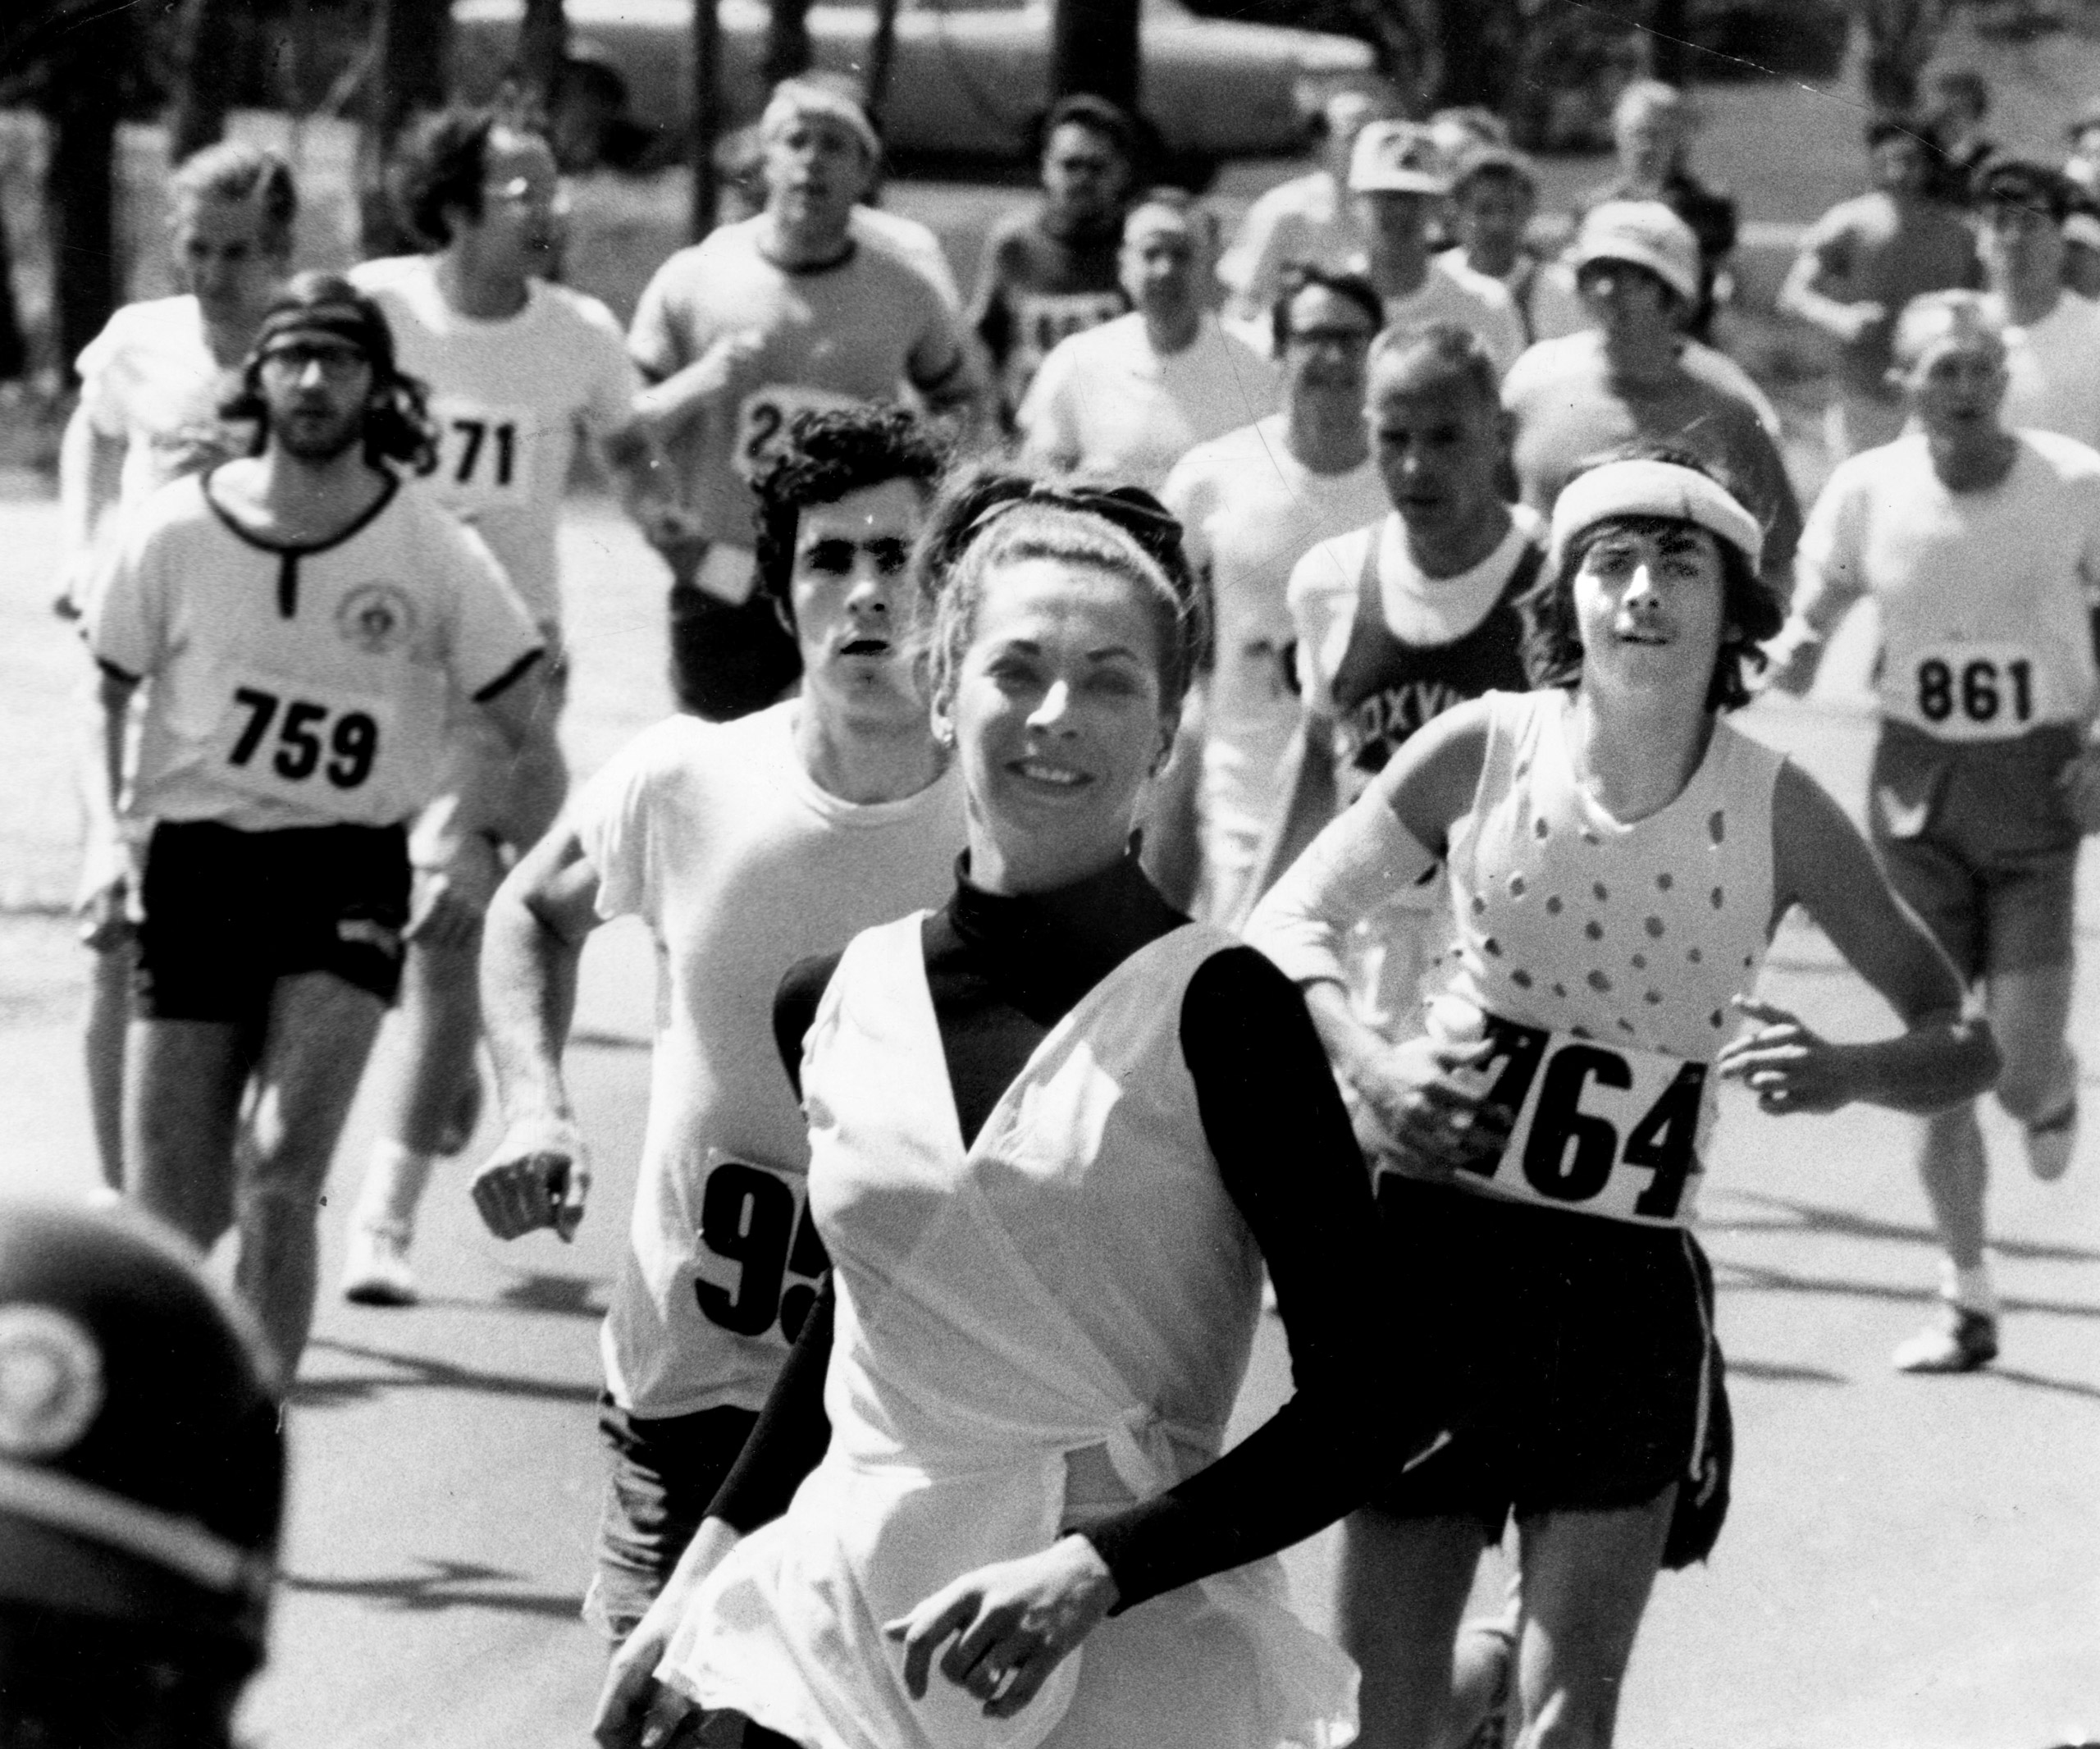 Kathy Switzer runs in the Boston Marathon on April 19, 1971.